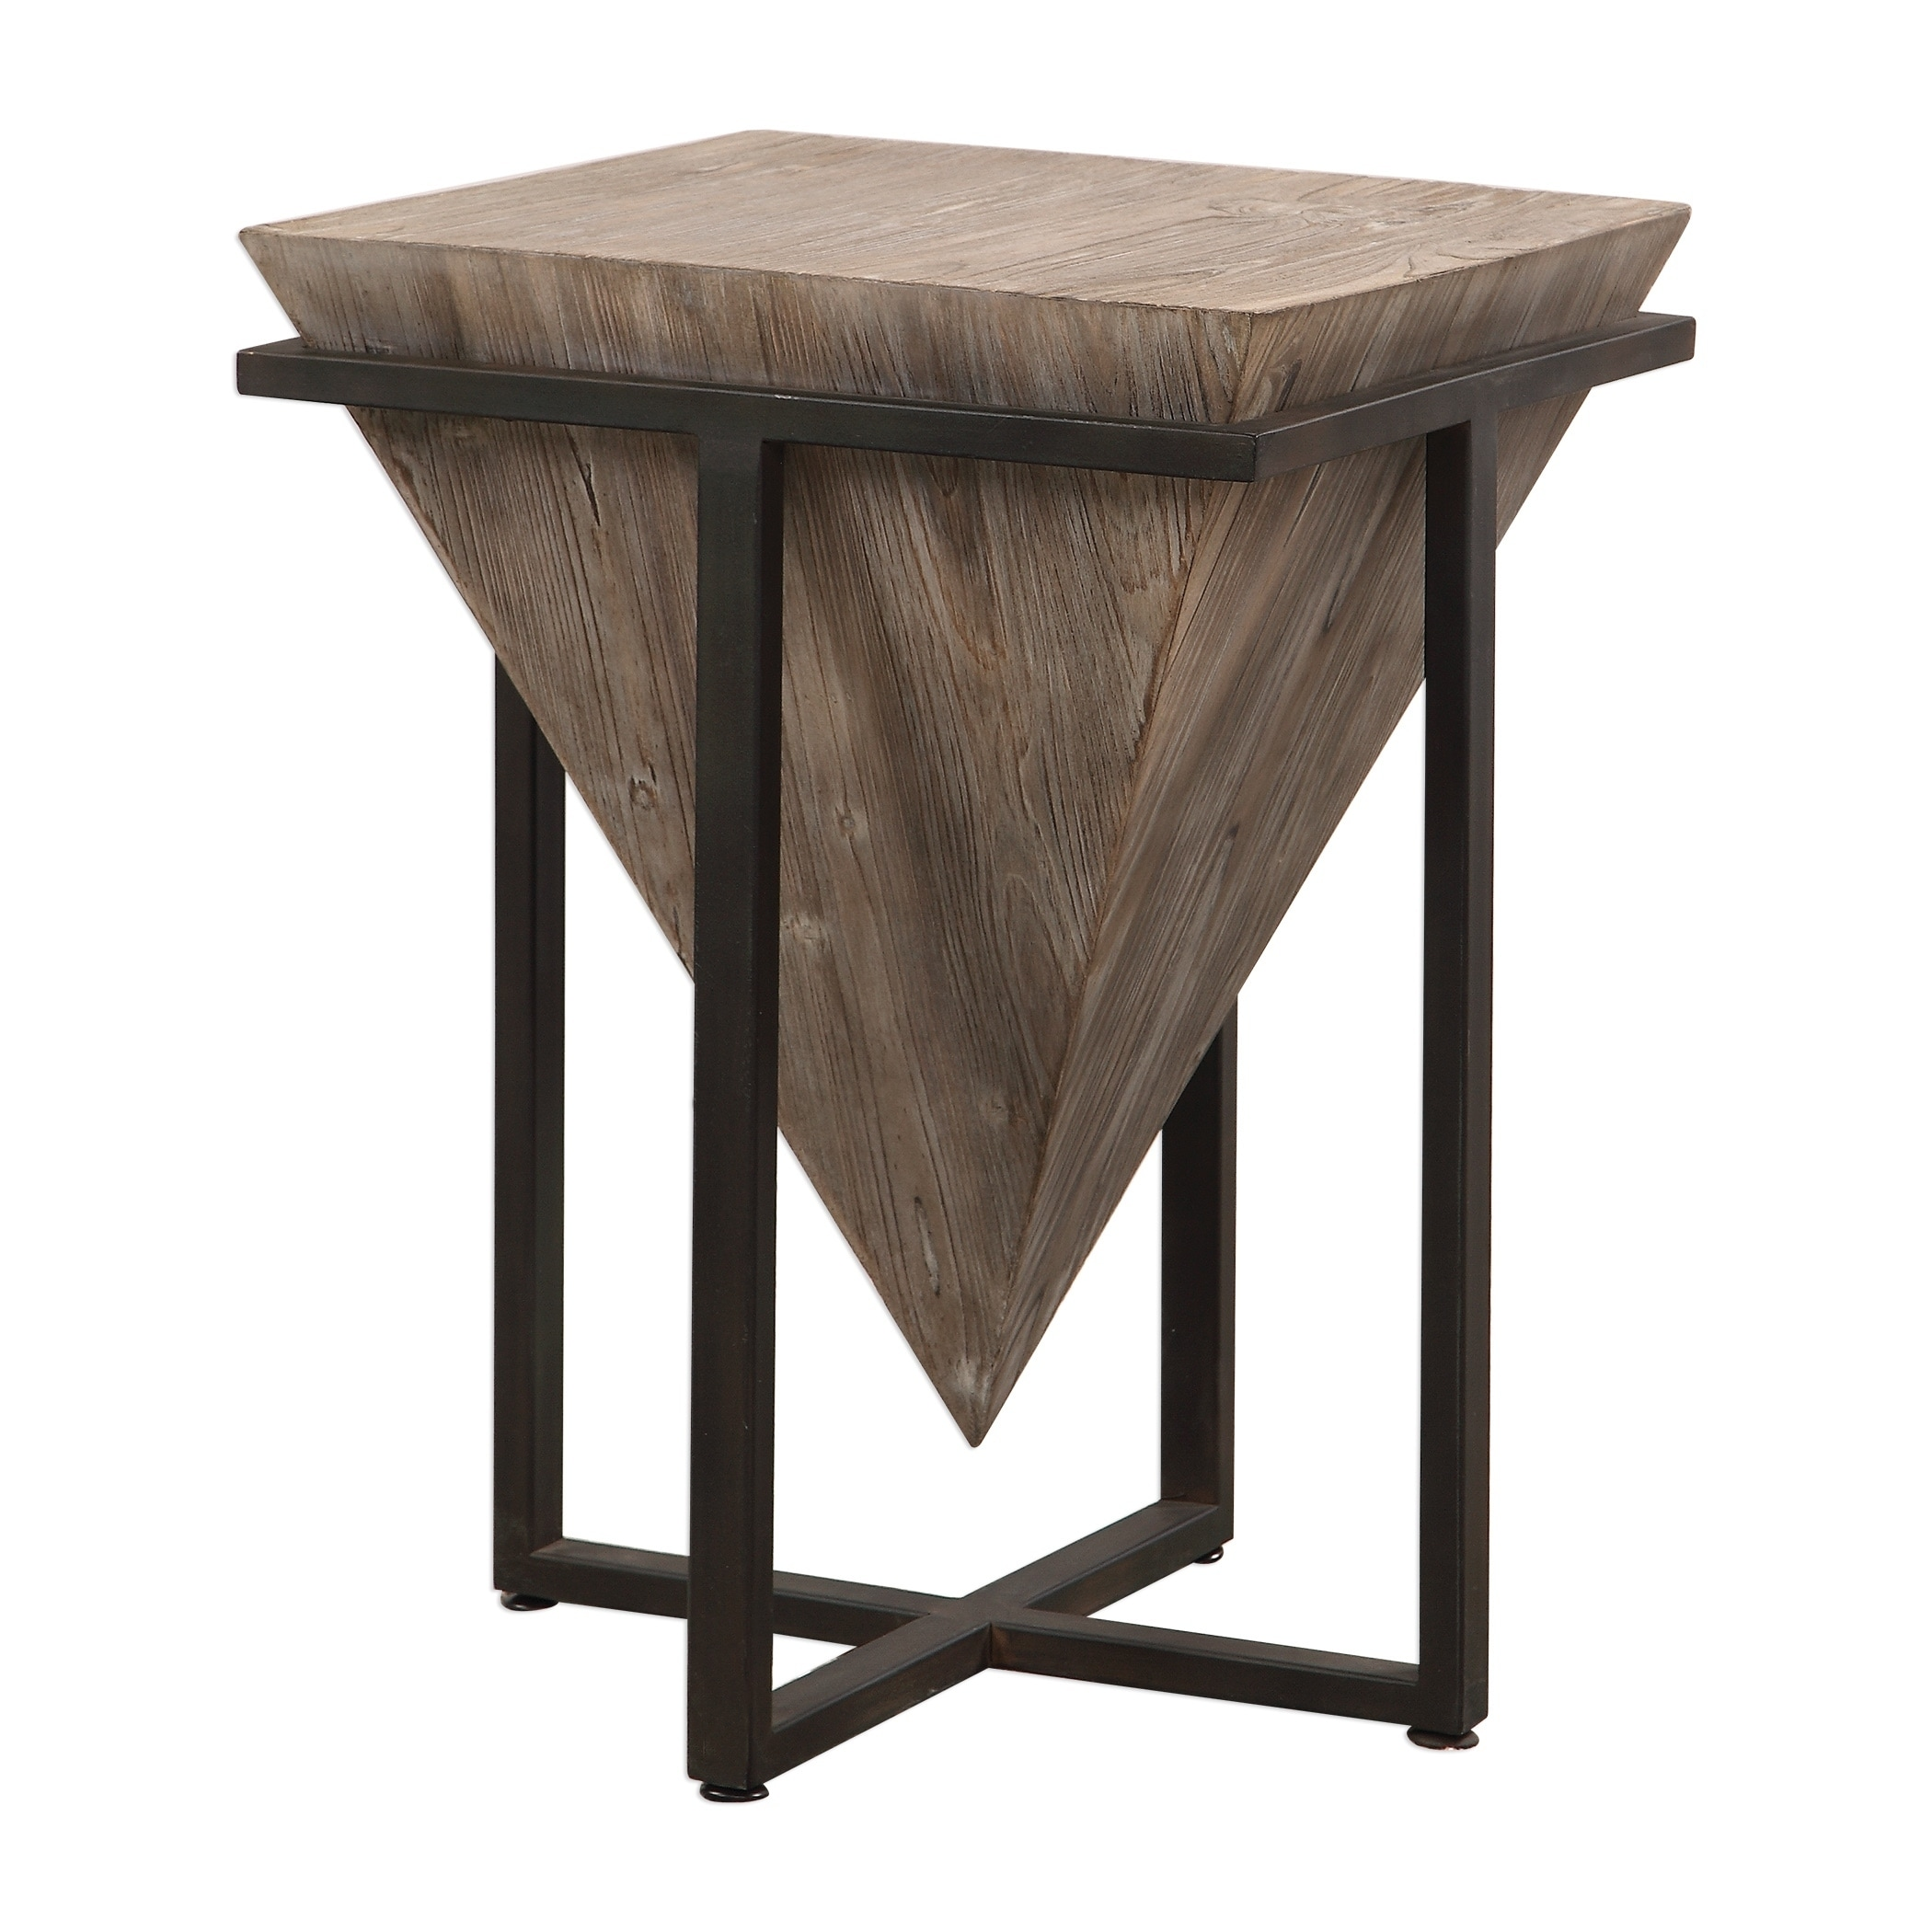 40f43b7e590 Details about Uttermost Bertrand Aged Black and Grey Wash Wood Accent Table